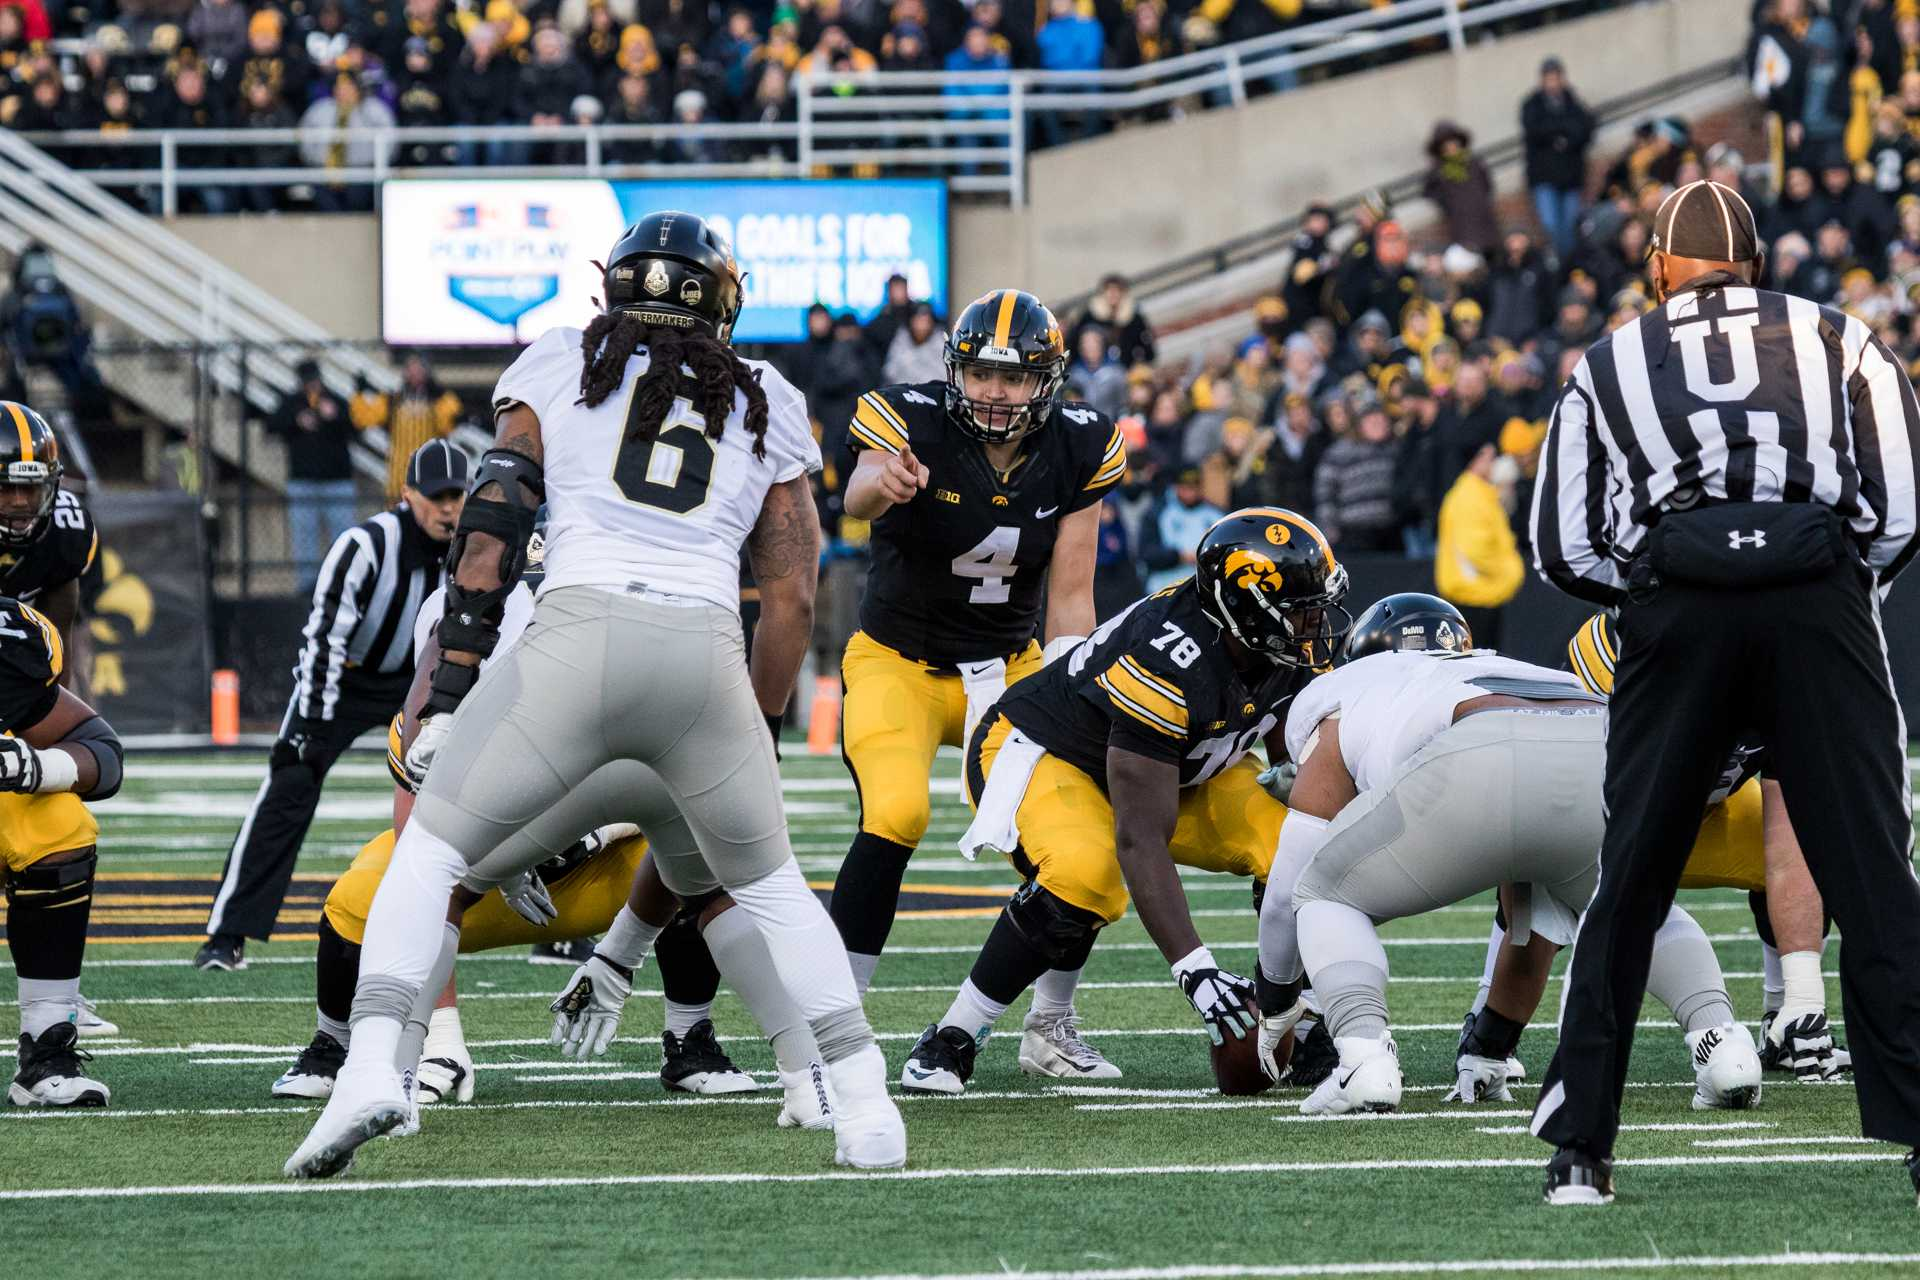 Iowa Quarterback Nate Stanley calls out the defense during a game against Purdue University on Saturday, Nov. 18, 2017. At halftime, the Hawkeyes lead the Boilermakers 9 to 7. (David Harmantas/The Daily Iowan)